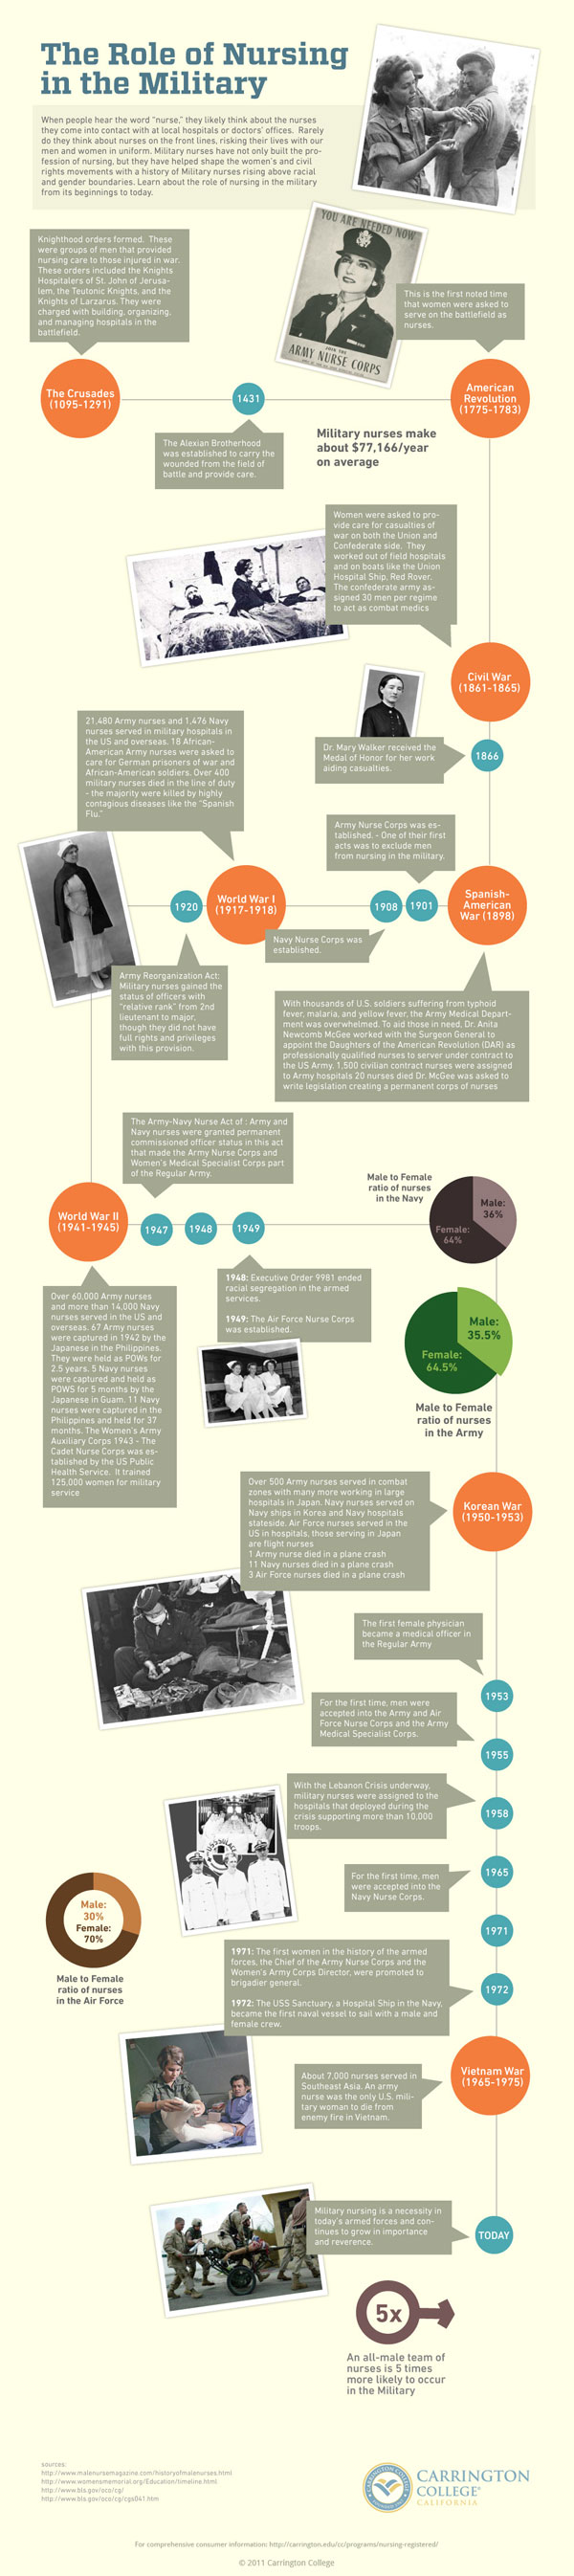 History Of Nursing In The Military Infographic History Of Nursing Military Infographic